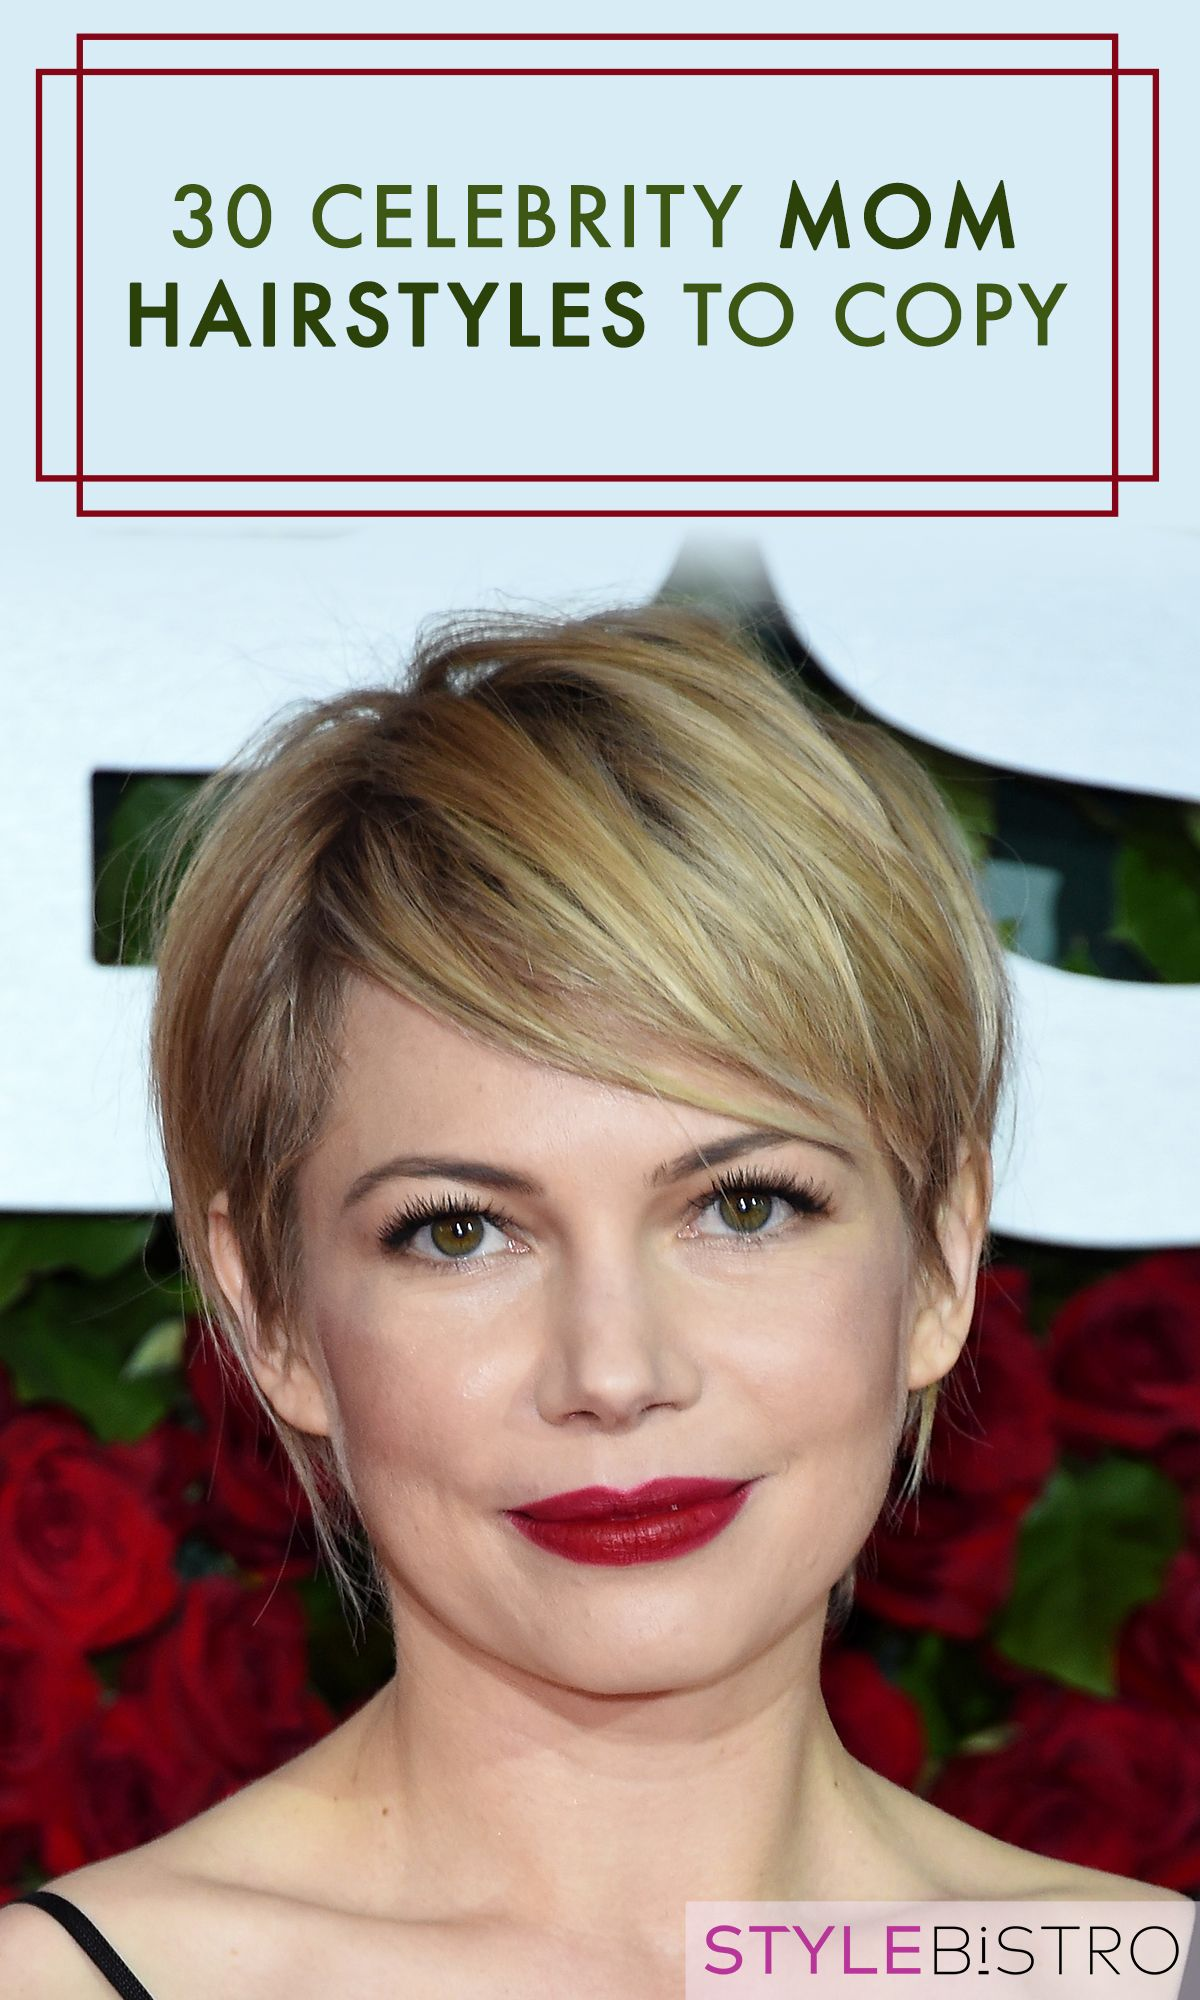 The Most Stylish Celebrity Mom Hairstyles Mom Hairstyles Hair Styles Celebrity Moms